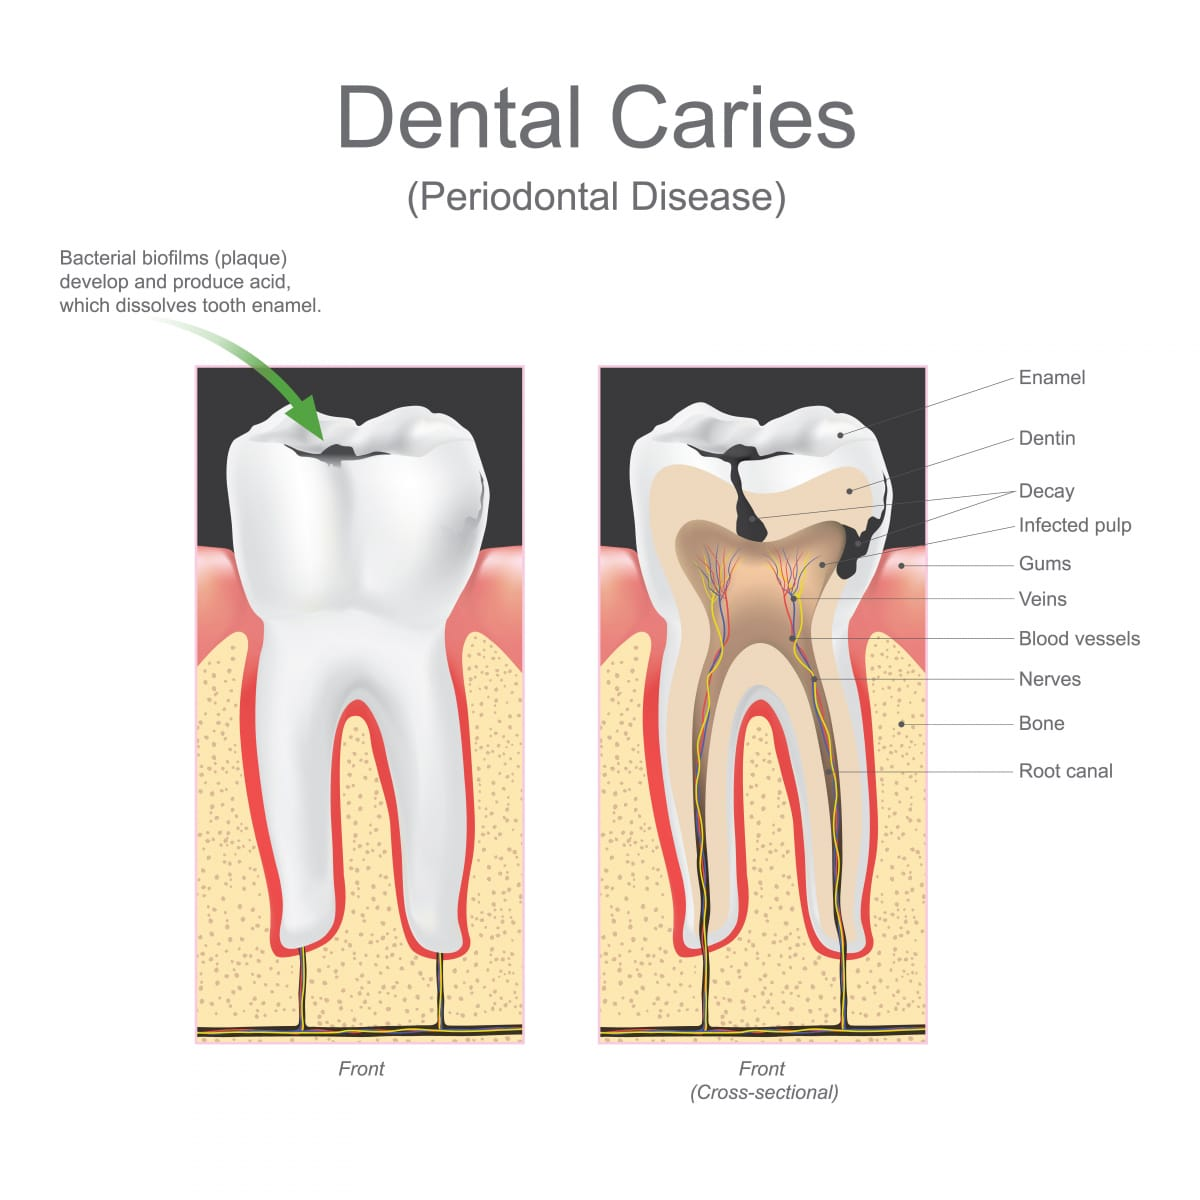 Microbiology dental caries